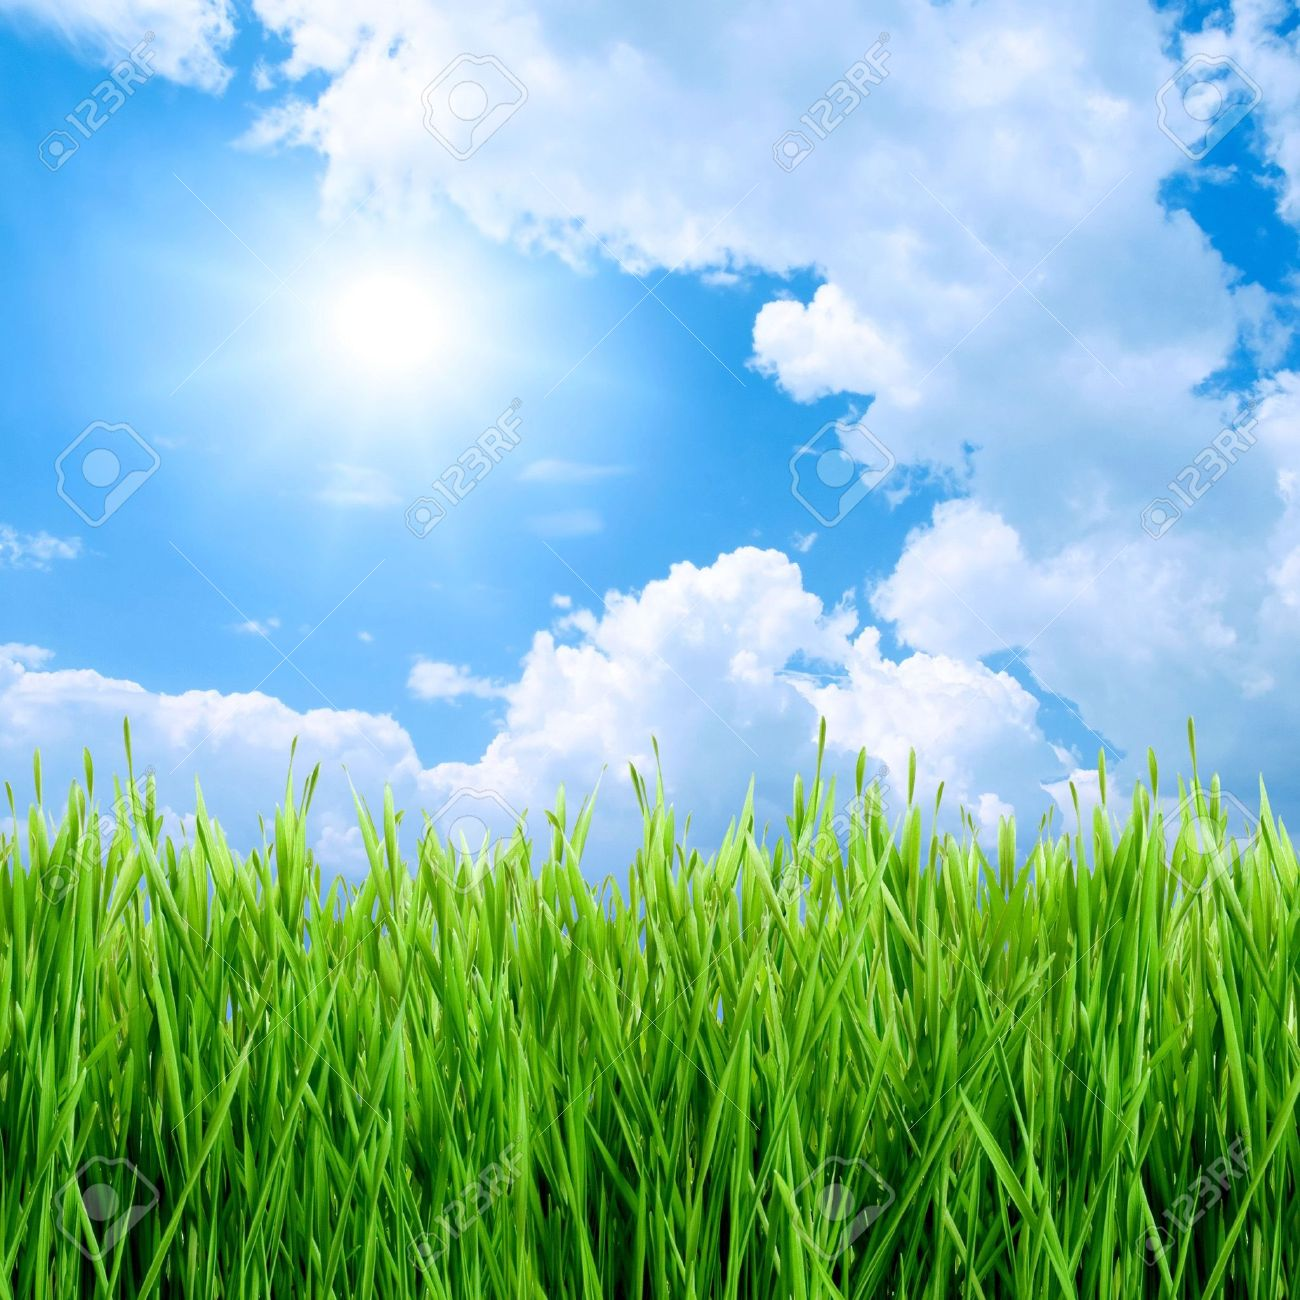 Green grass, sun and blue sky background. Stock Photo - 6739021